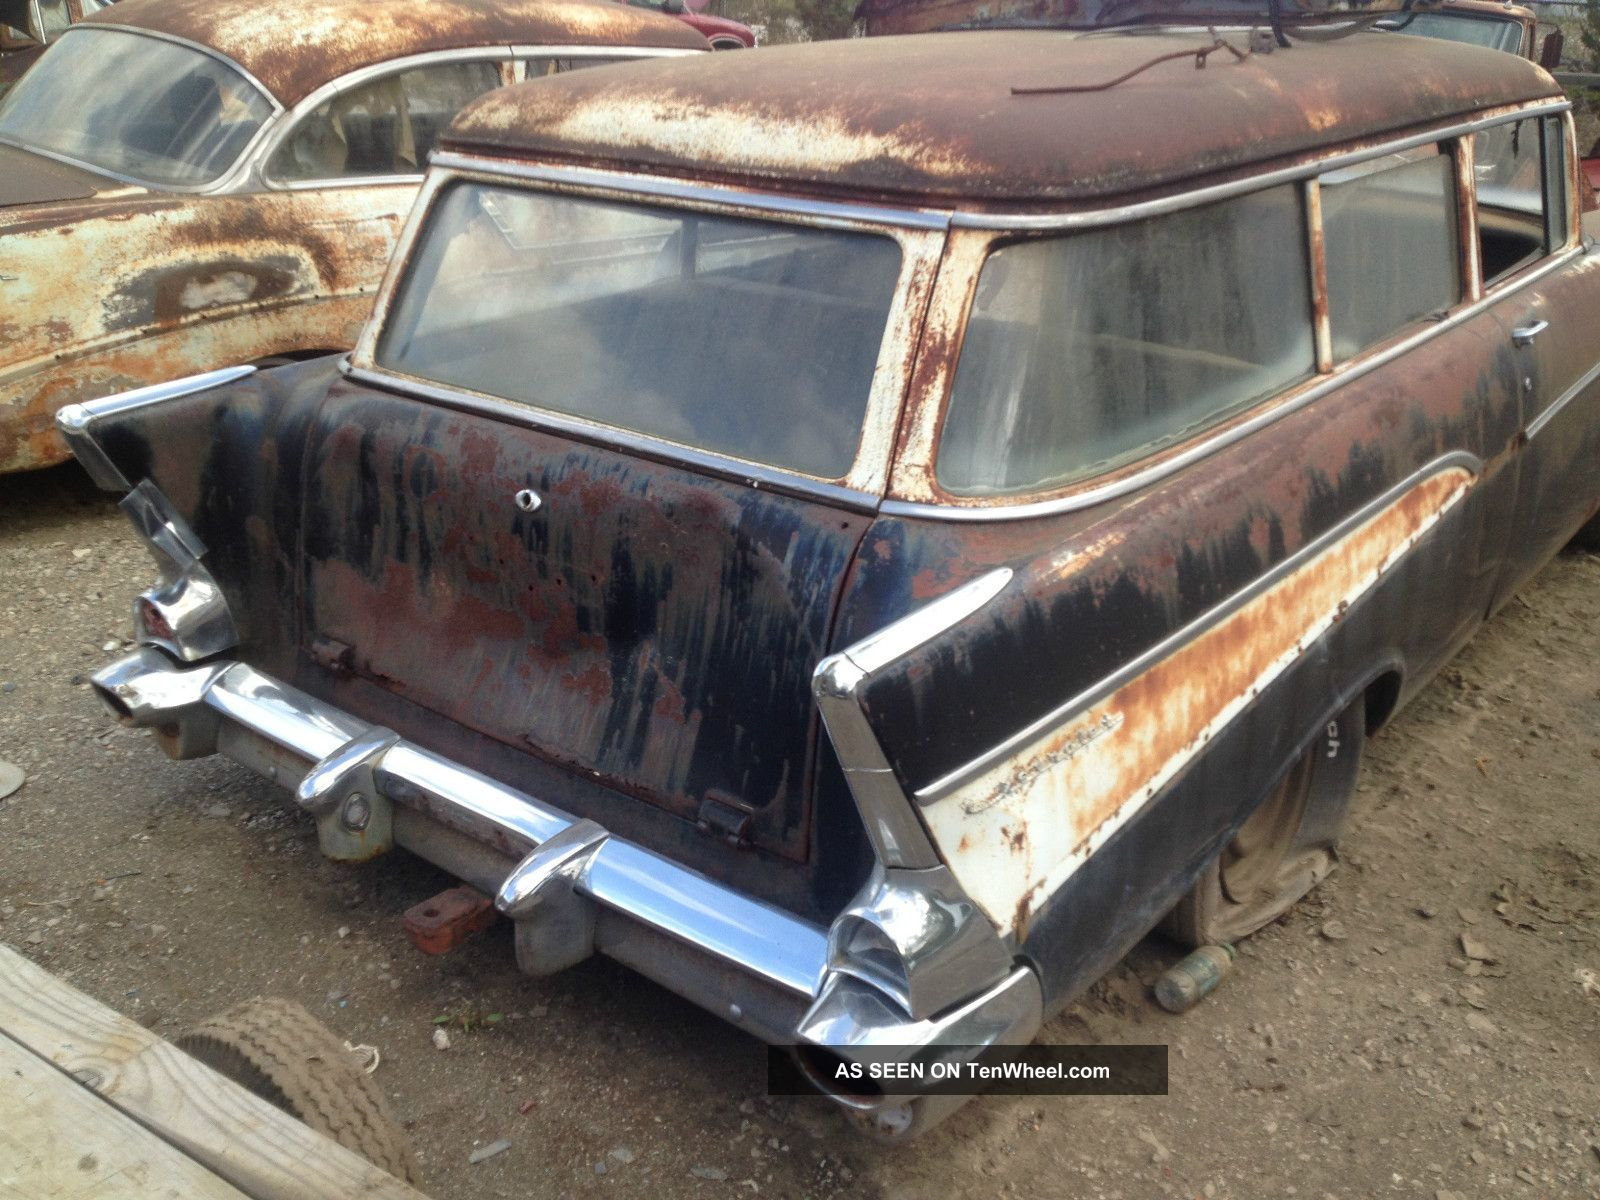 1957 Chevy Station Wagon Barn Find Cars Old Wagons Abandoned Cars